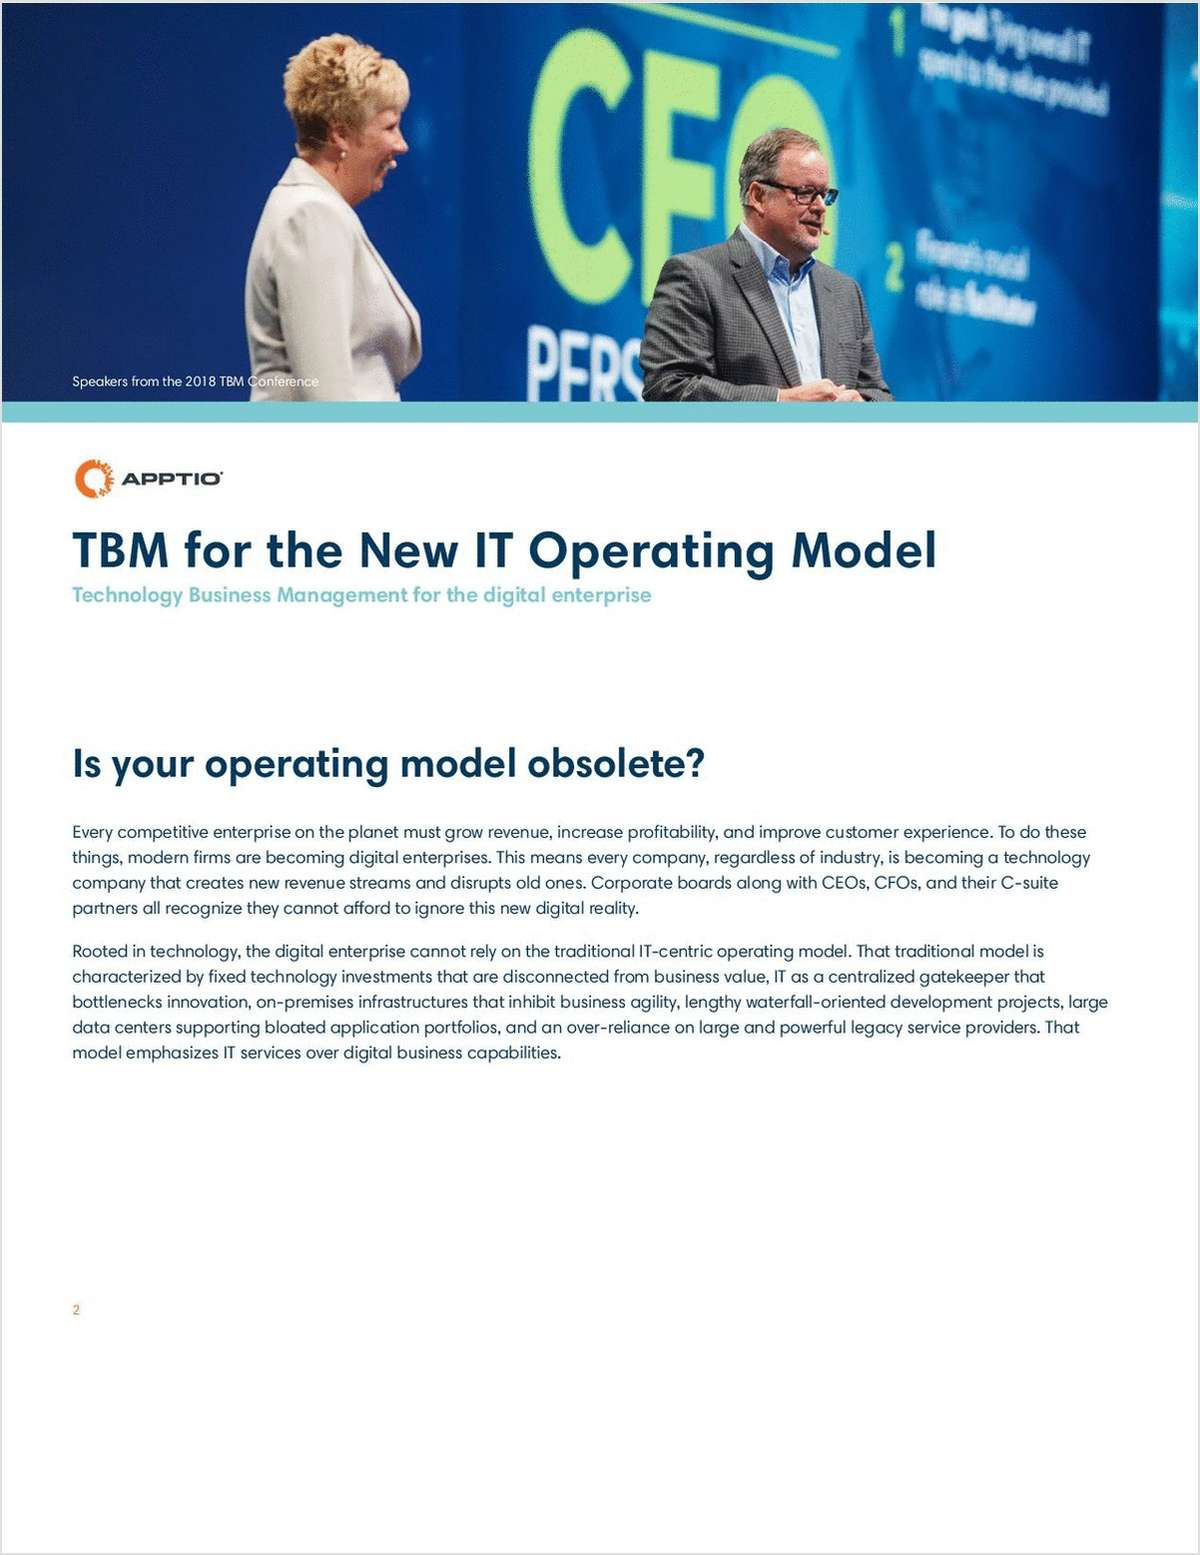 TBM for the New IT Operating Model